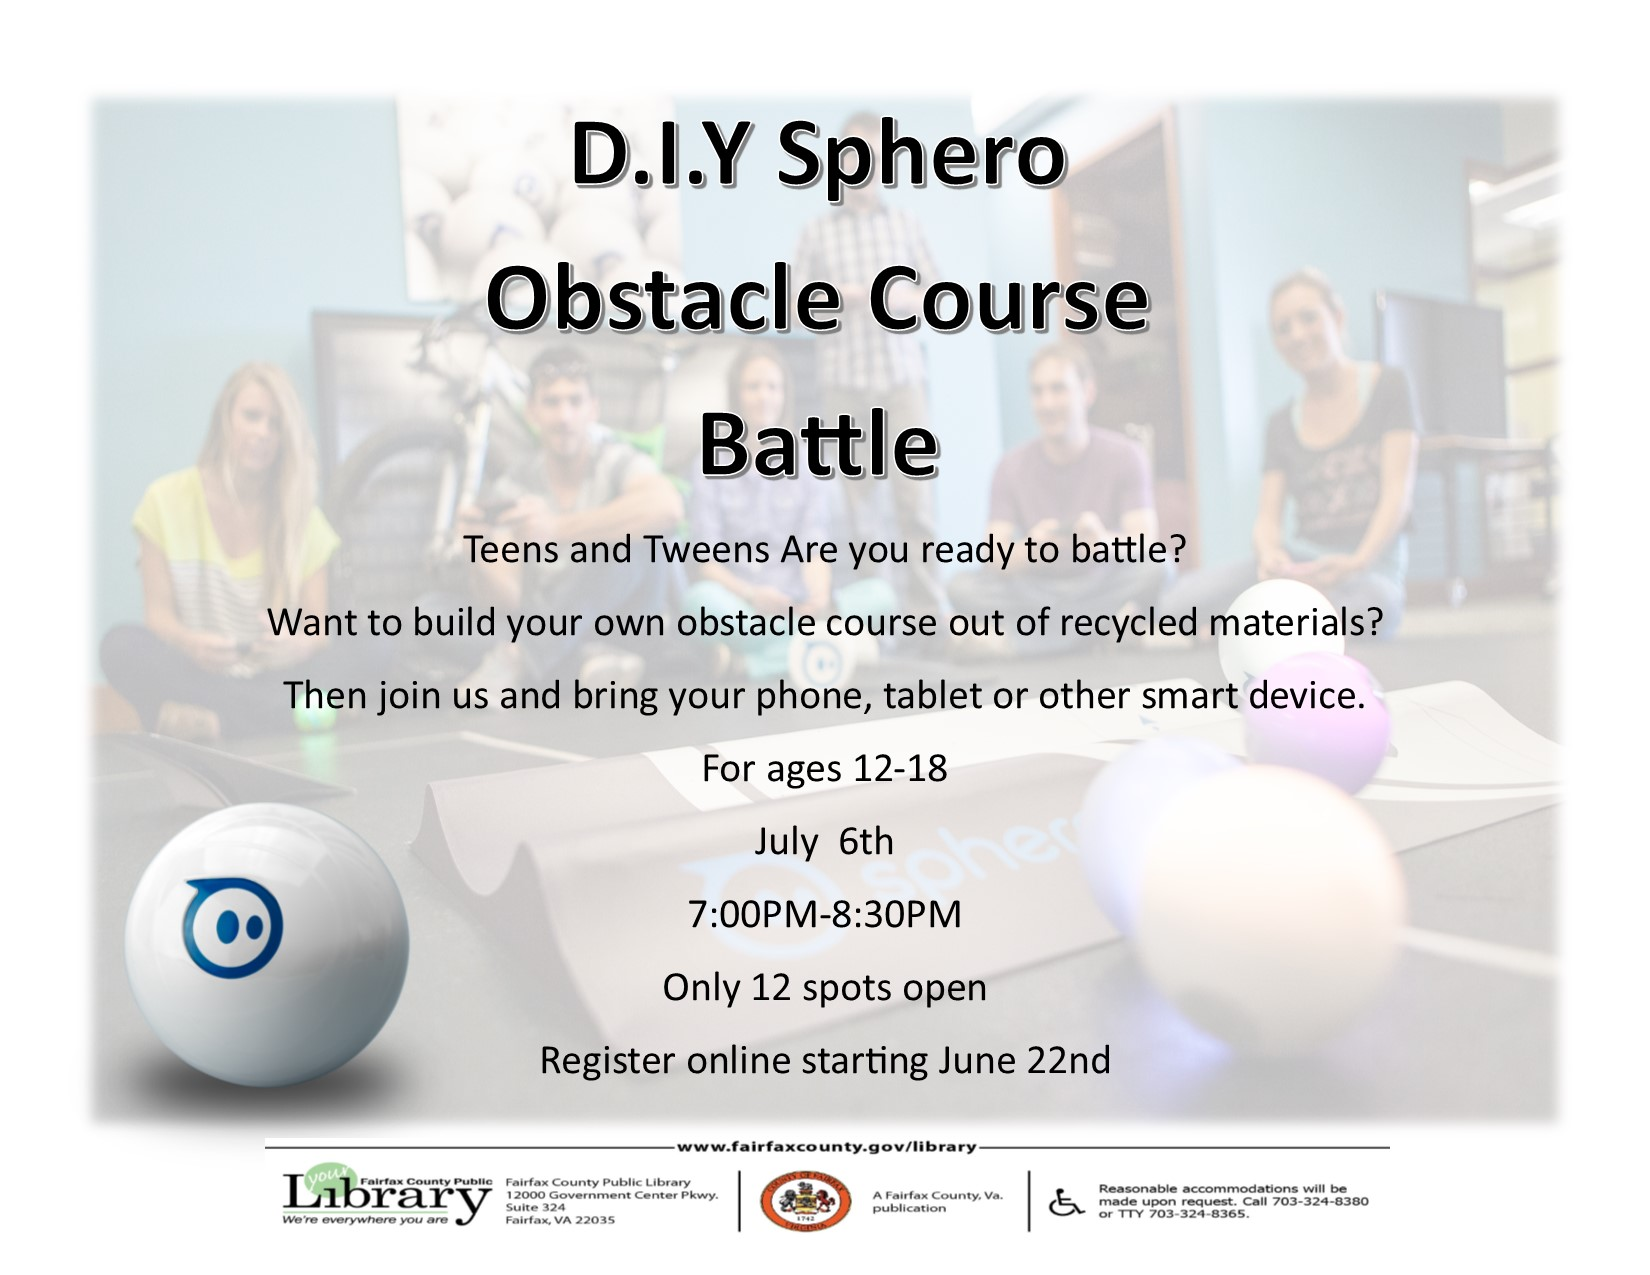 D.I.Y Sphero Obstacle Course Battle